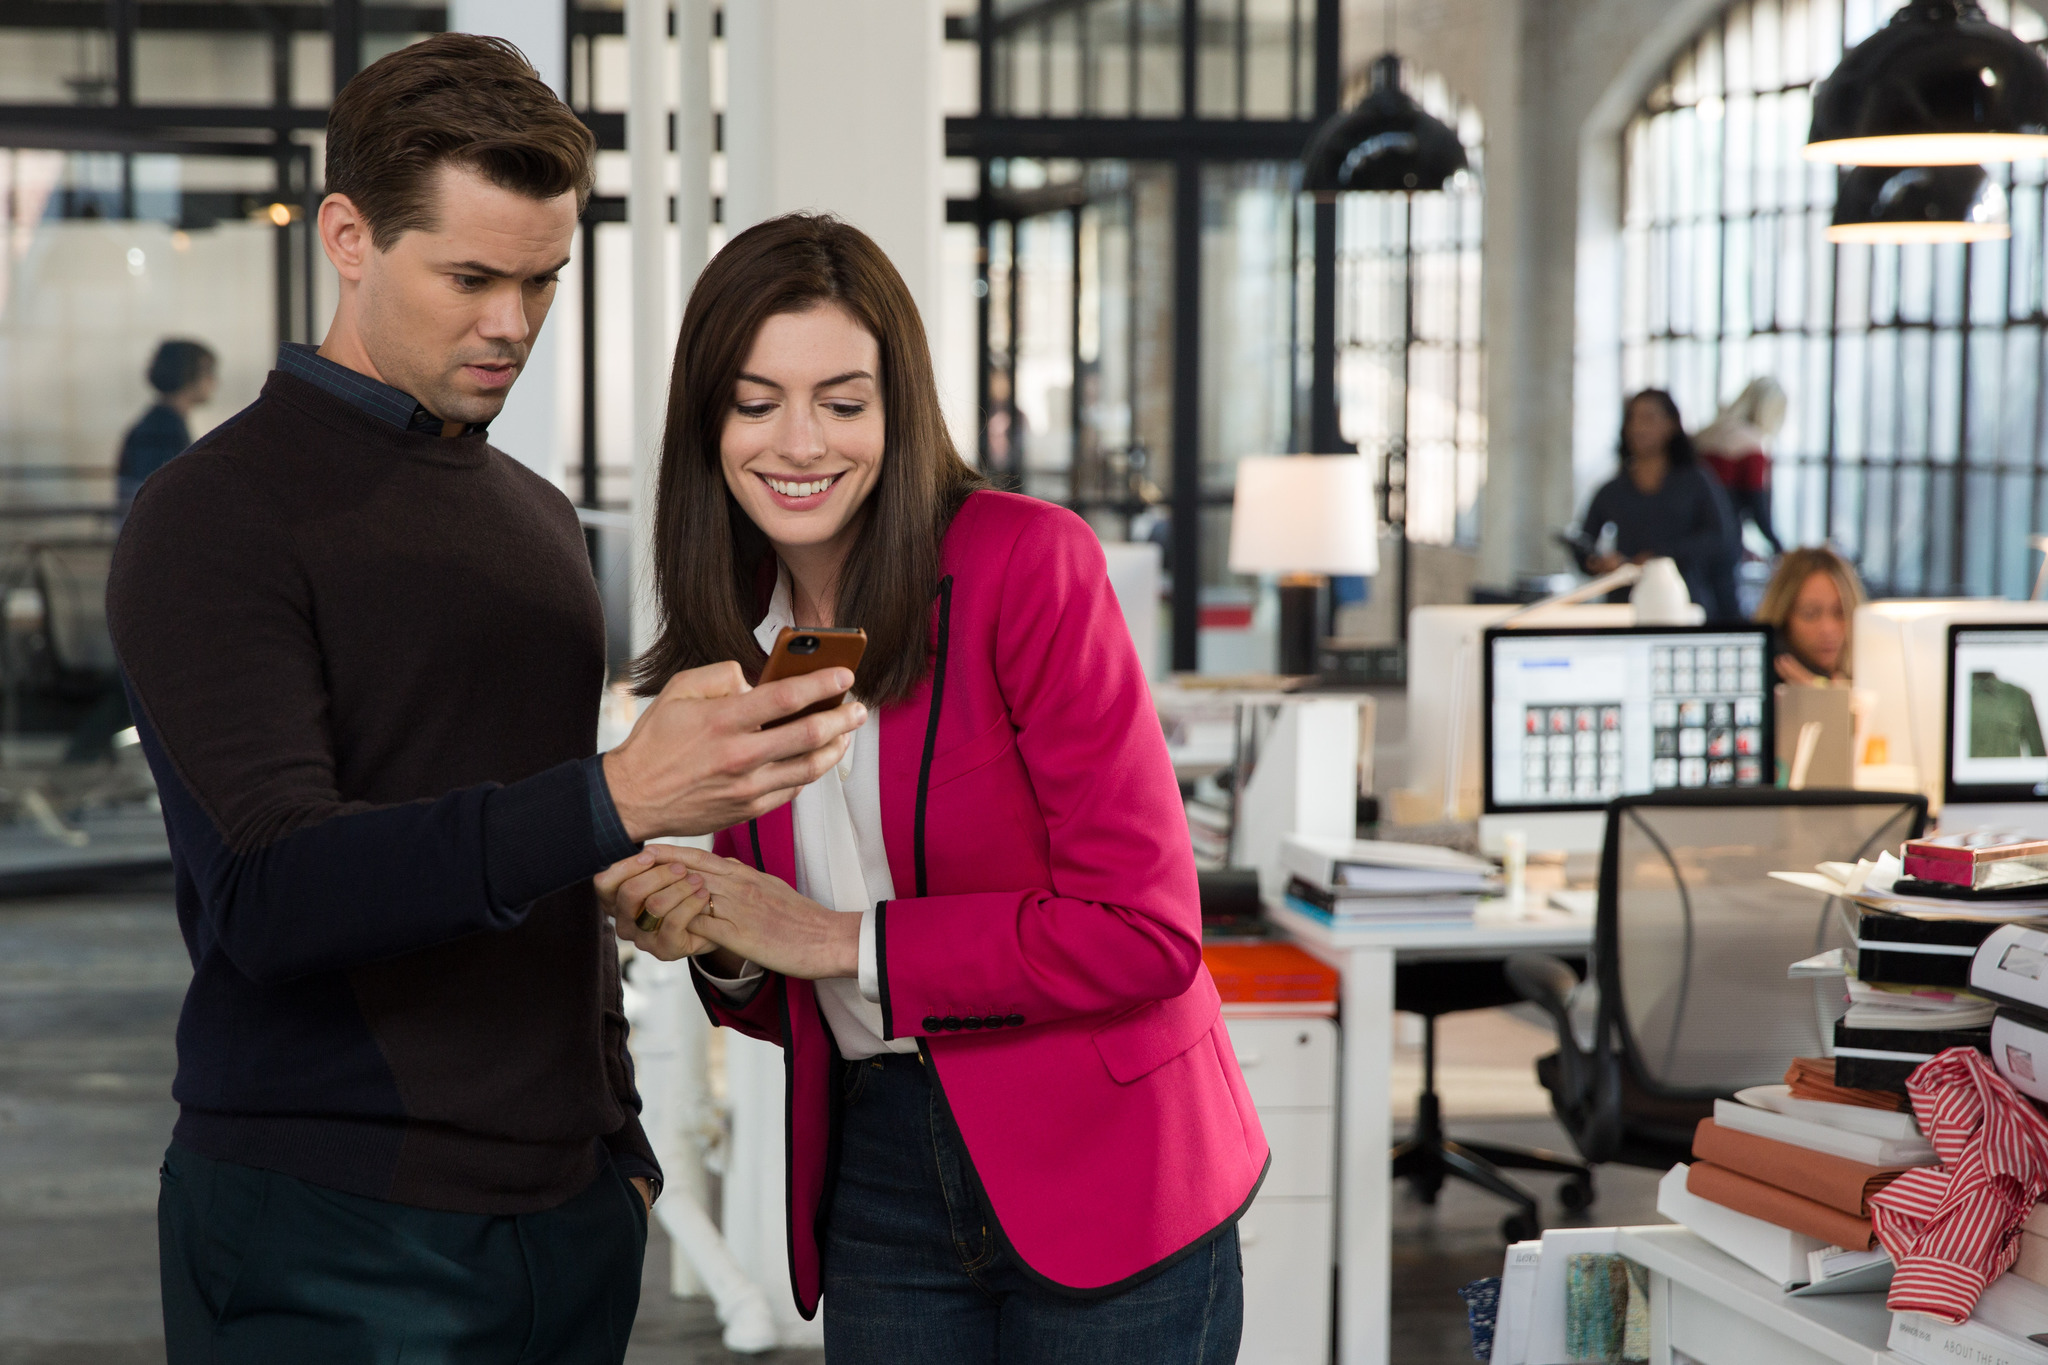 Anne Hathaway and Andrew Rannells in The Intern (2015)